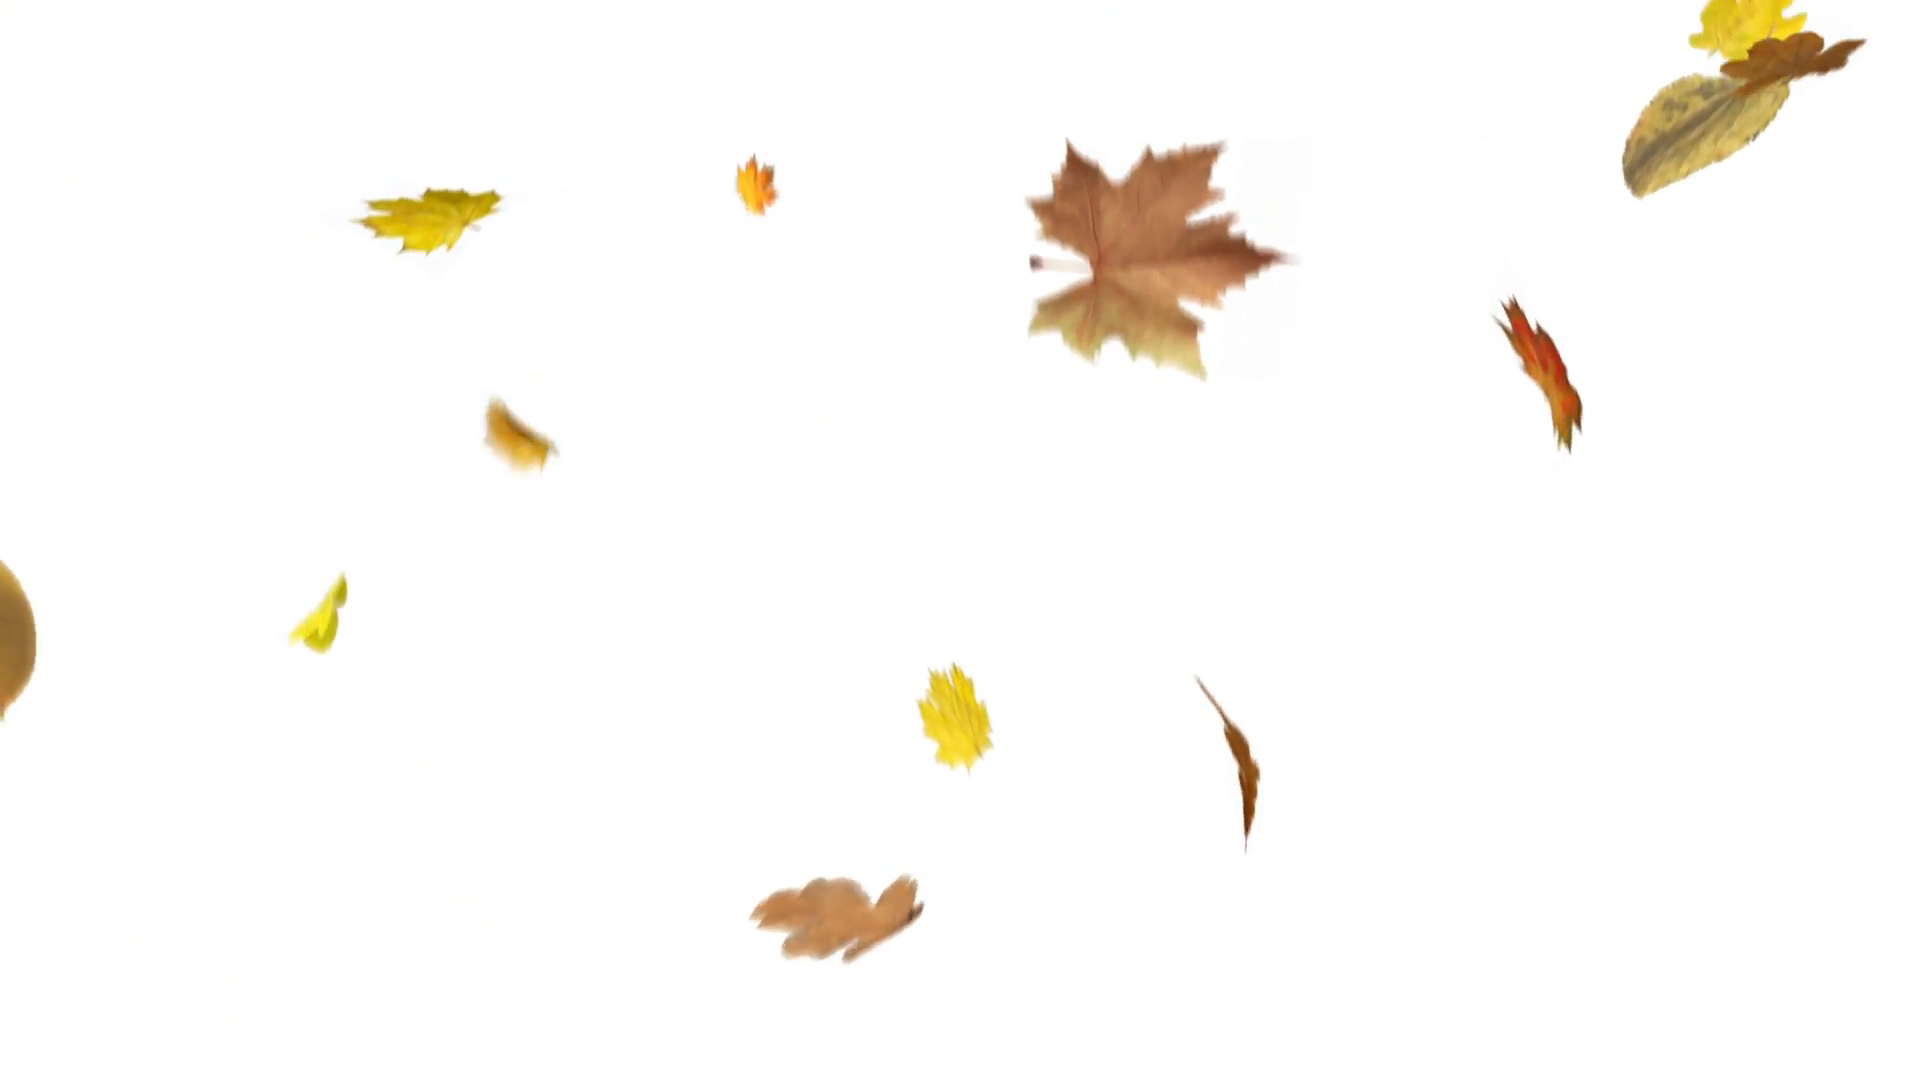 Leaves Falling Png (105+ images in Collection) Page 2.